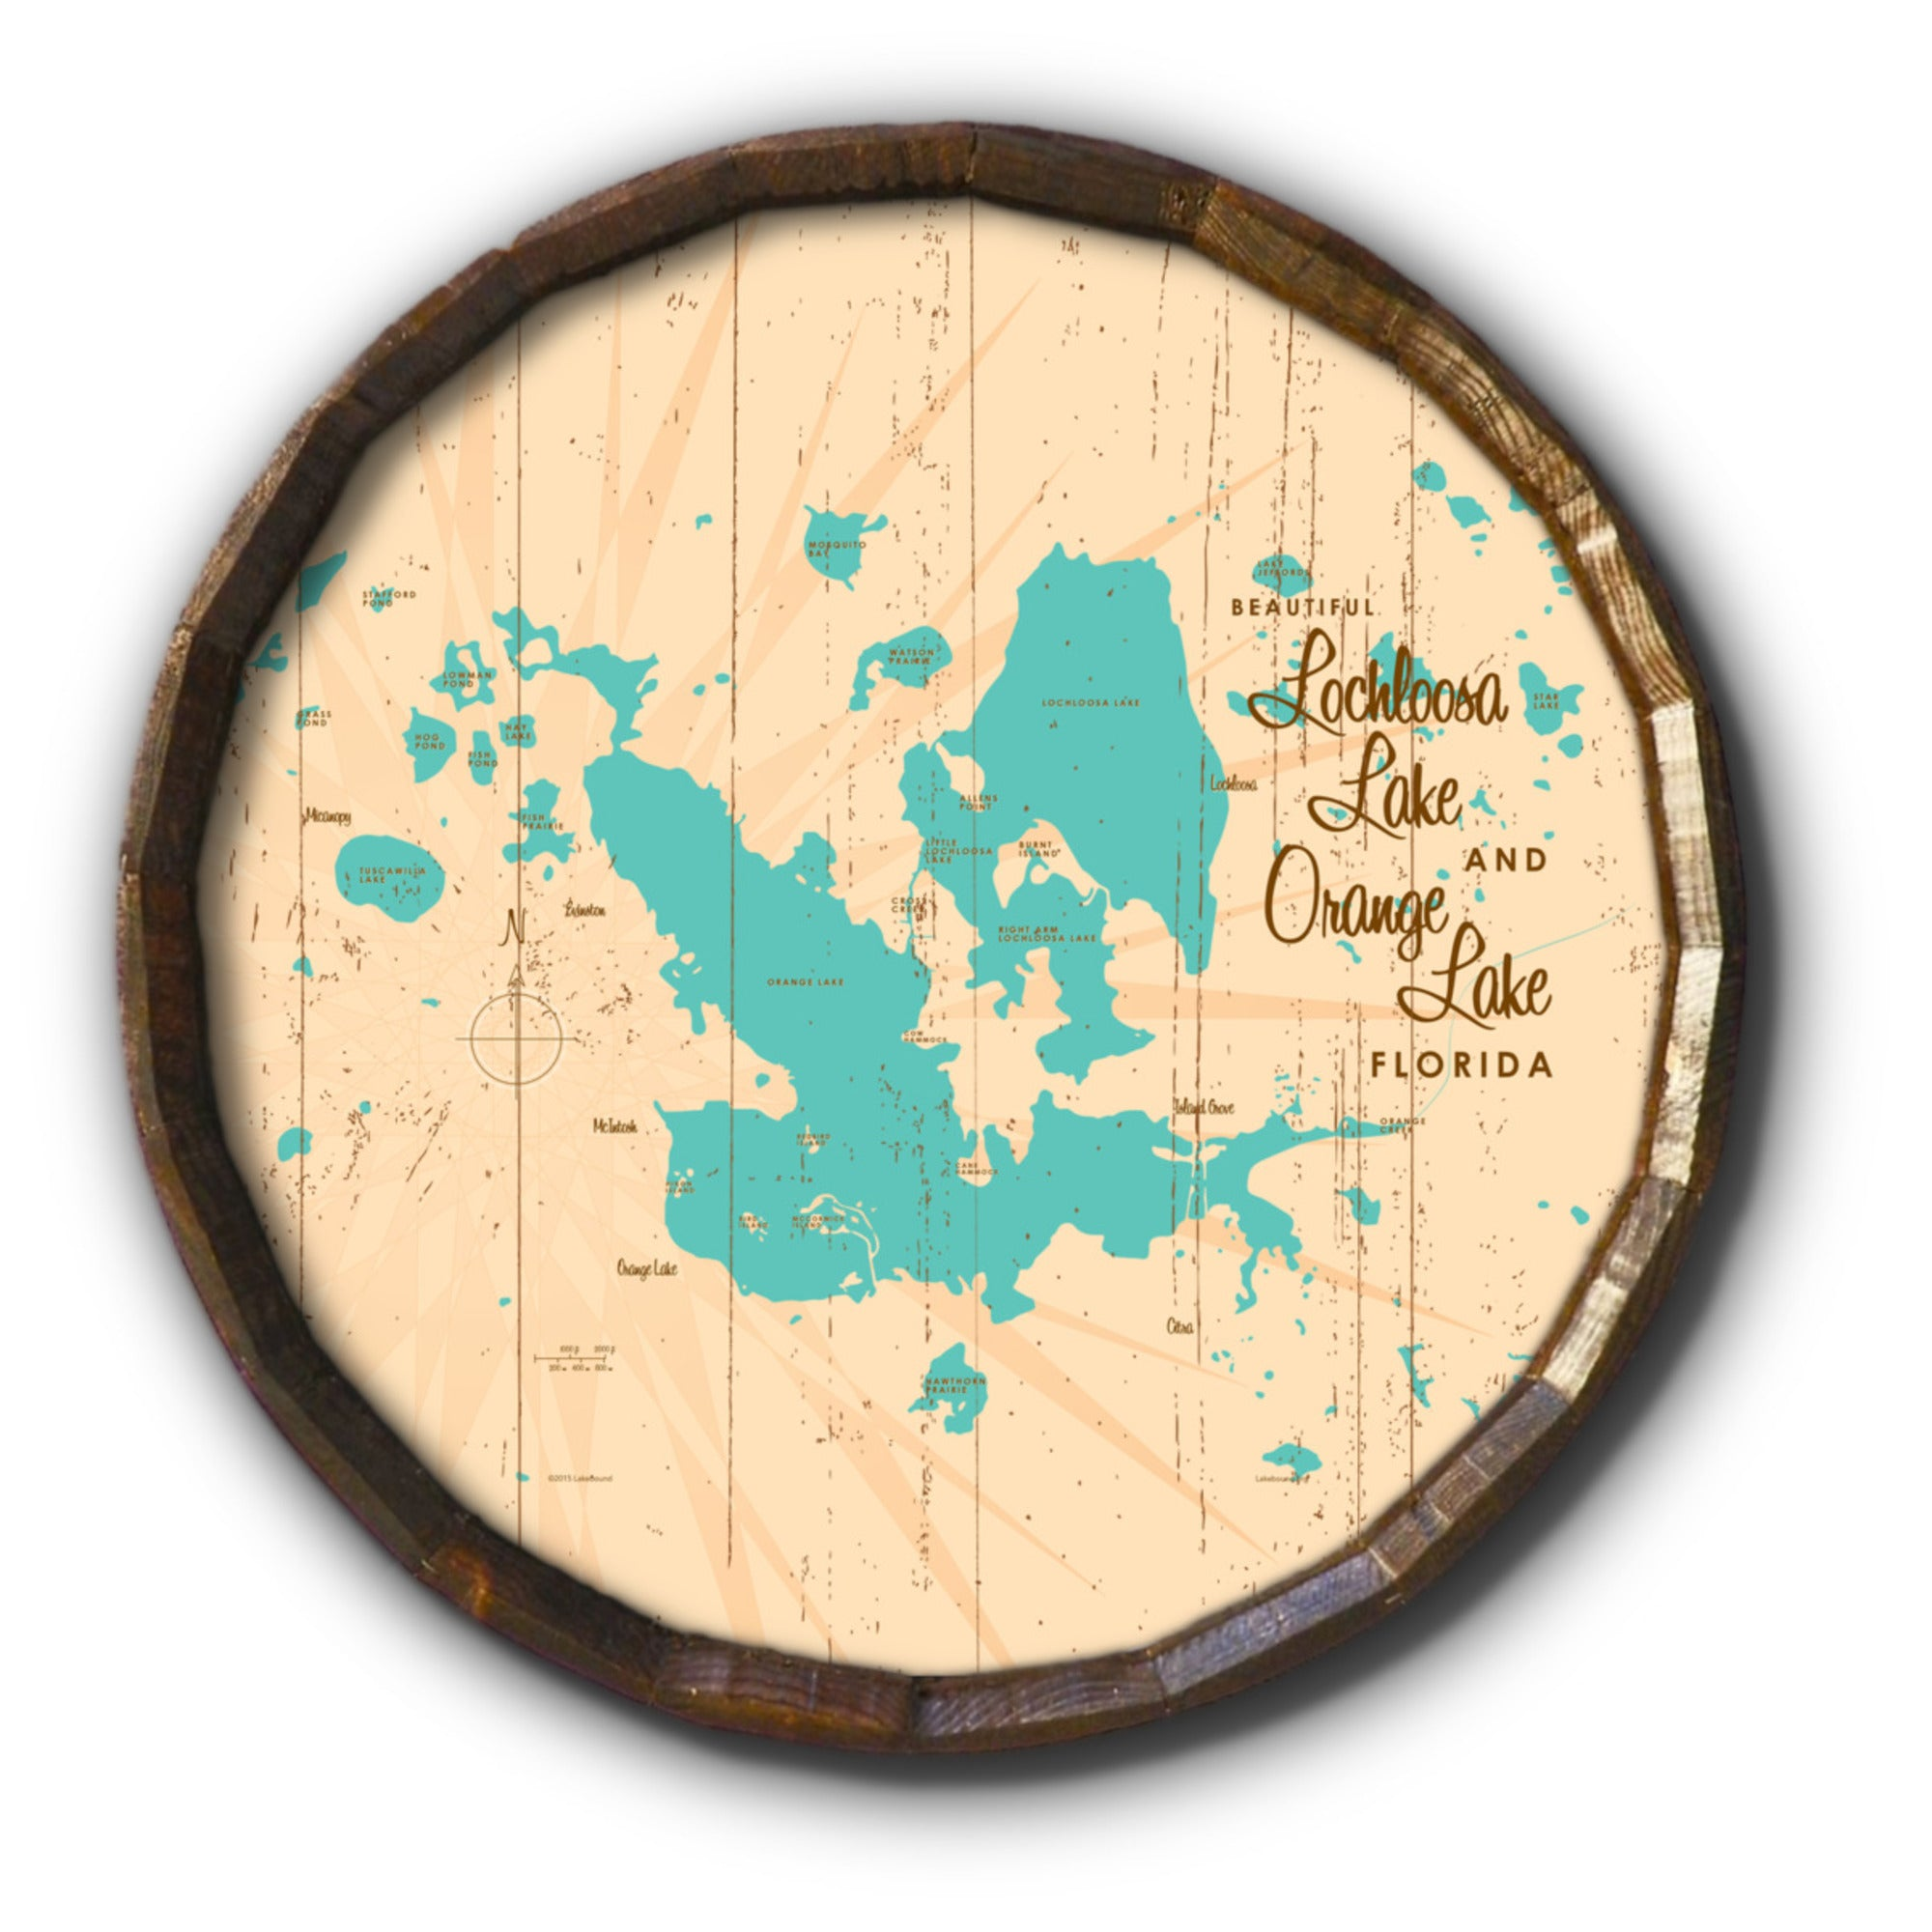 Lochloosa & Orange Lakes Florida, Rustic Barrel End Map Art